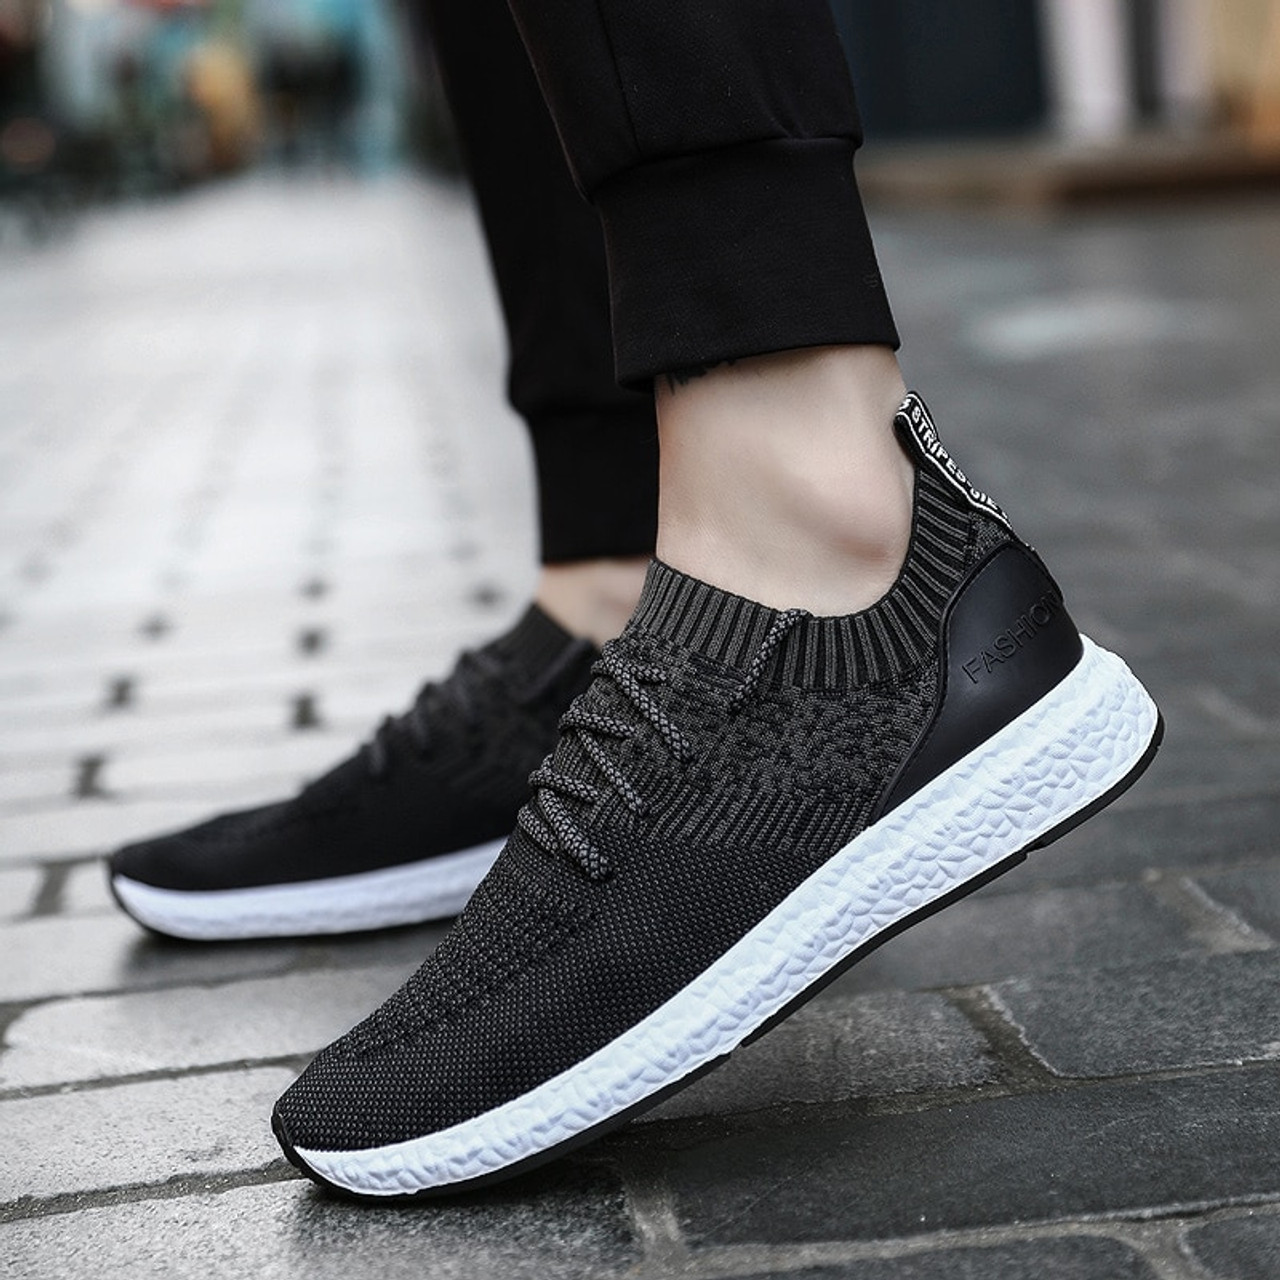 4d133a94e569 ... 2019 Casual Shoes Men Flat Sneakers Breathable Fashion Mesh Mens  Trainers Shoes Summer Sneakers Men Running ...